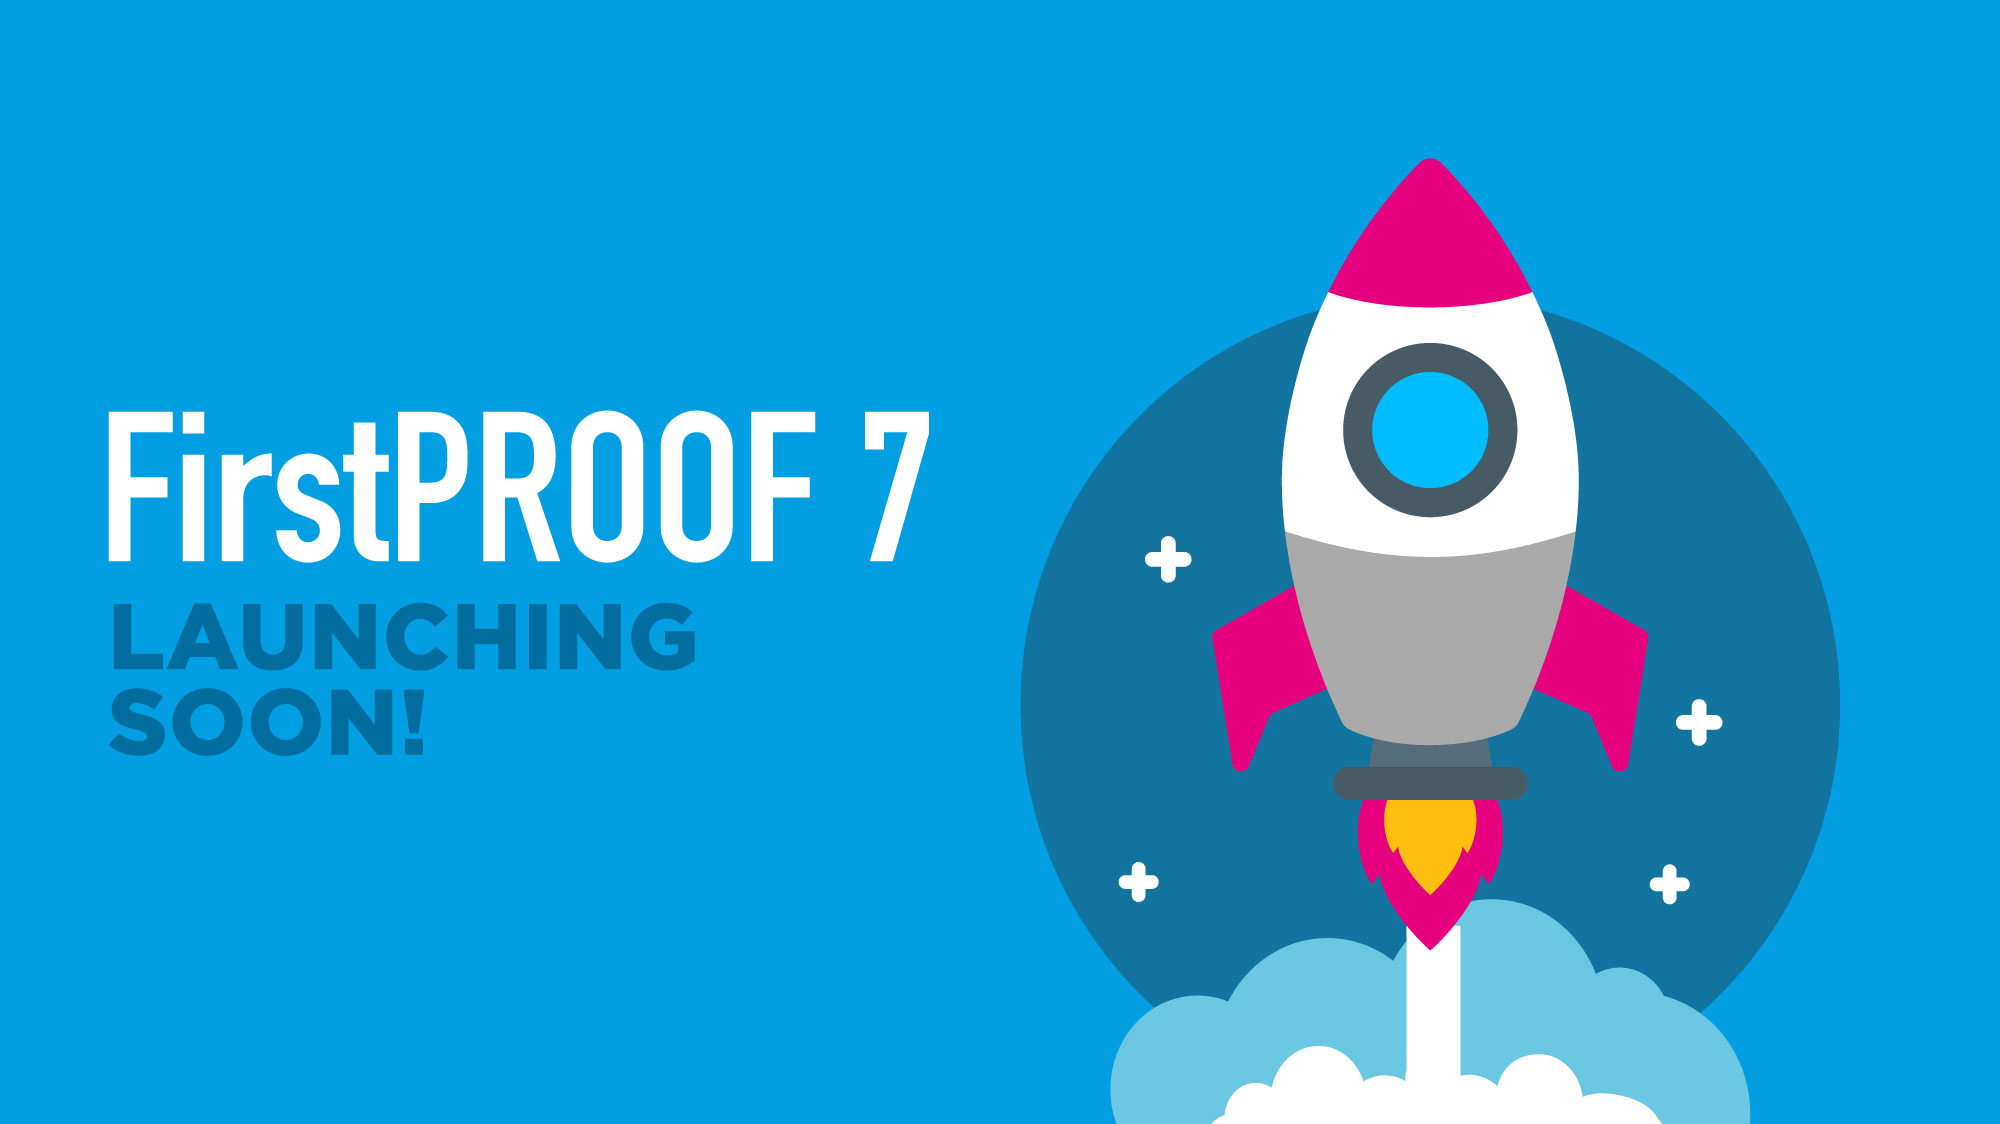 FirstPROOF 7 is launching soon